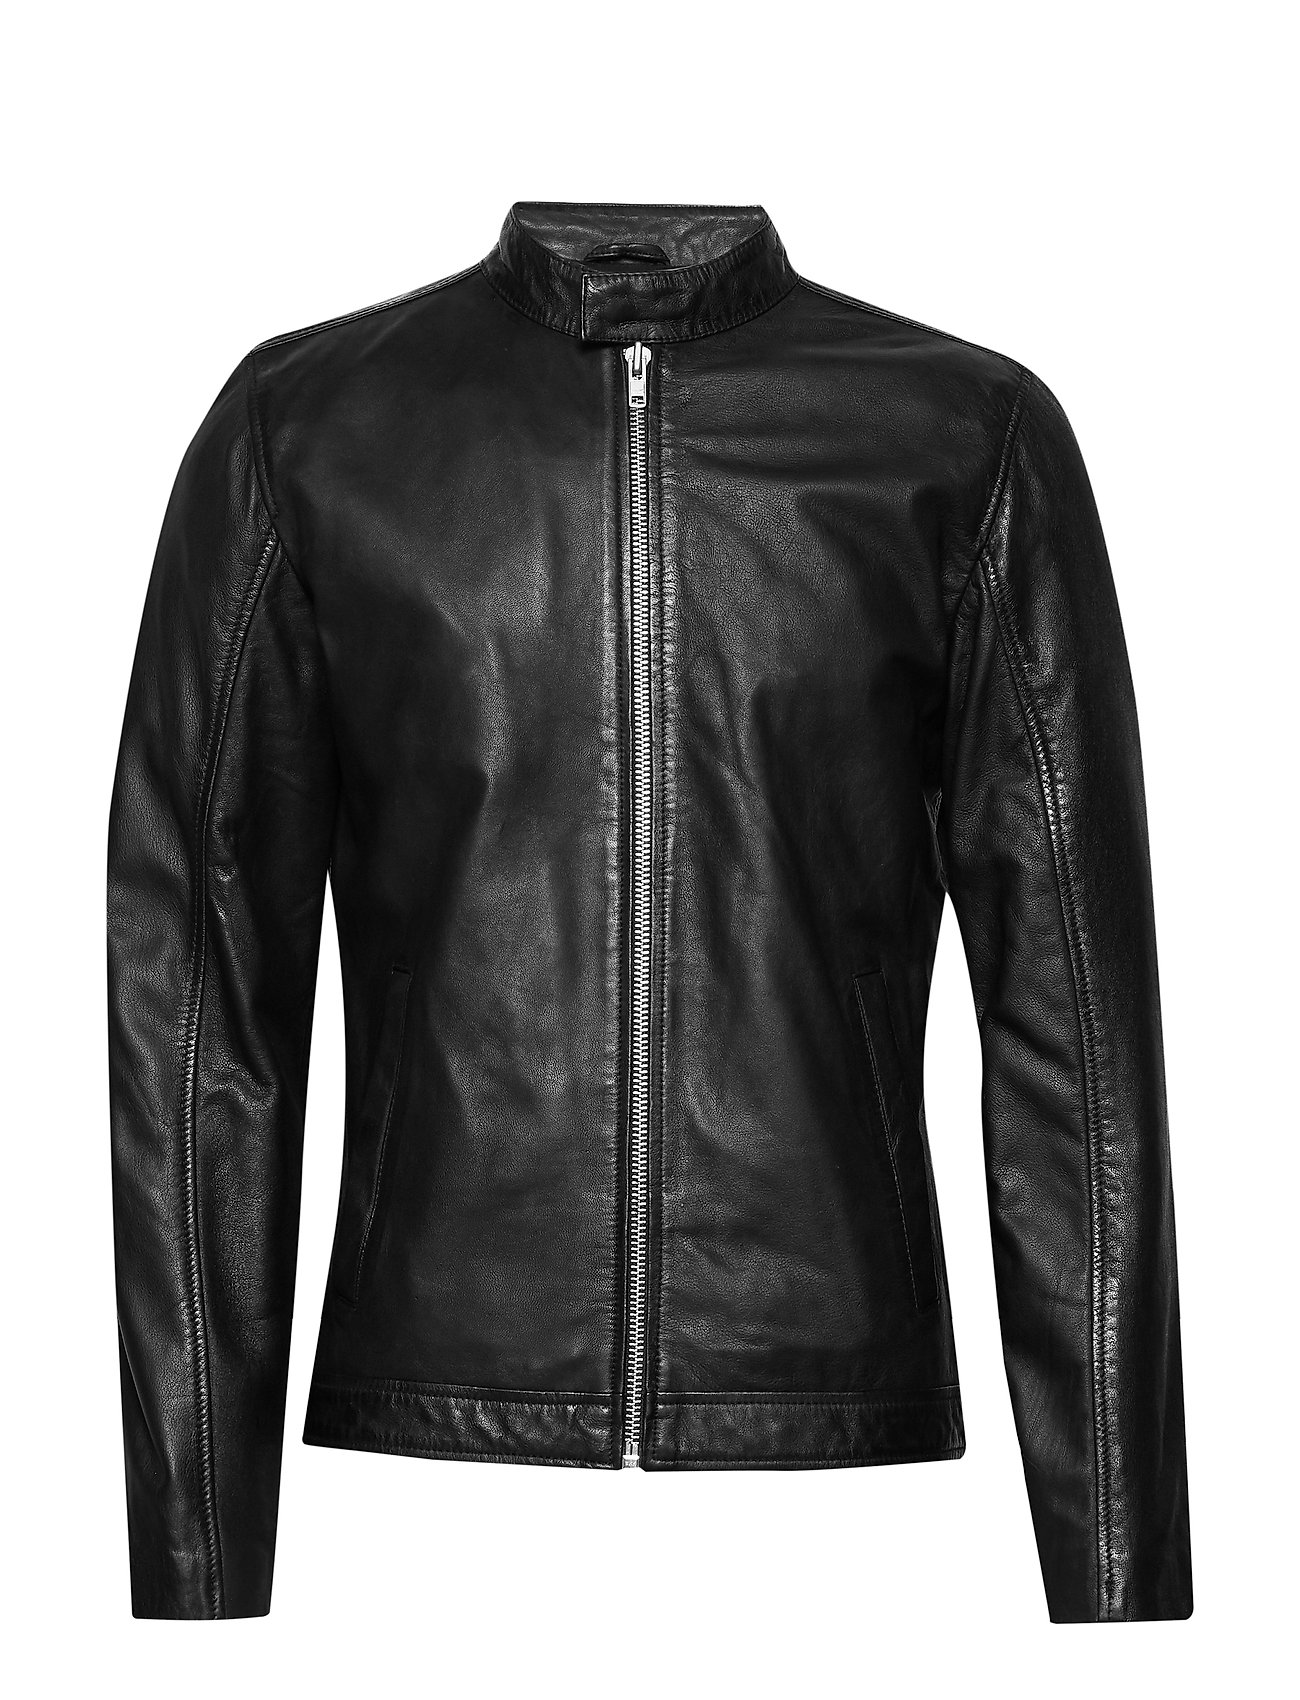 Image of Leather Jacket Læderjakke Skindjakke Sort Lindbergh (3500159829)